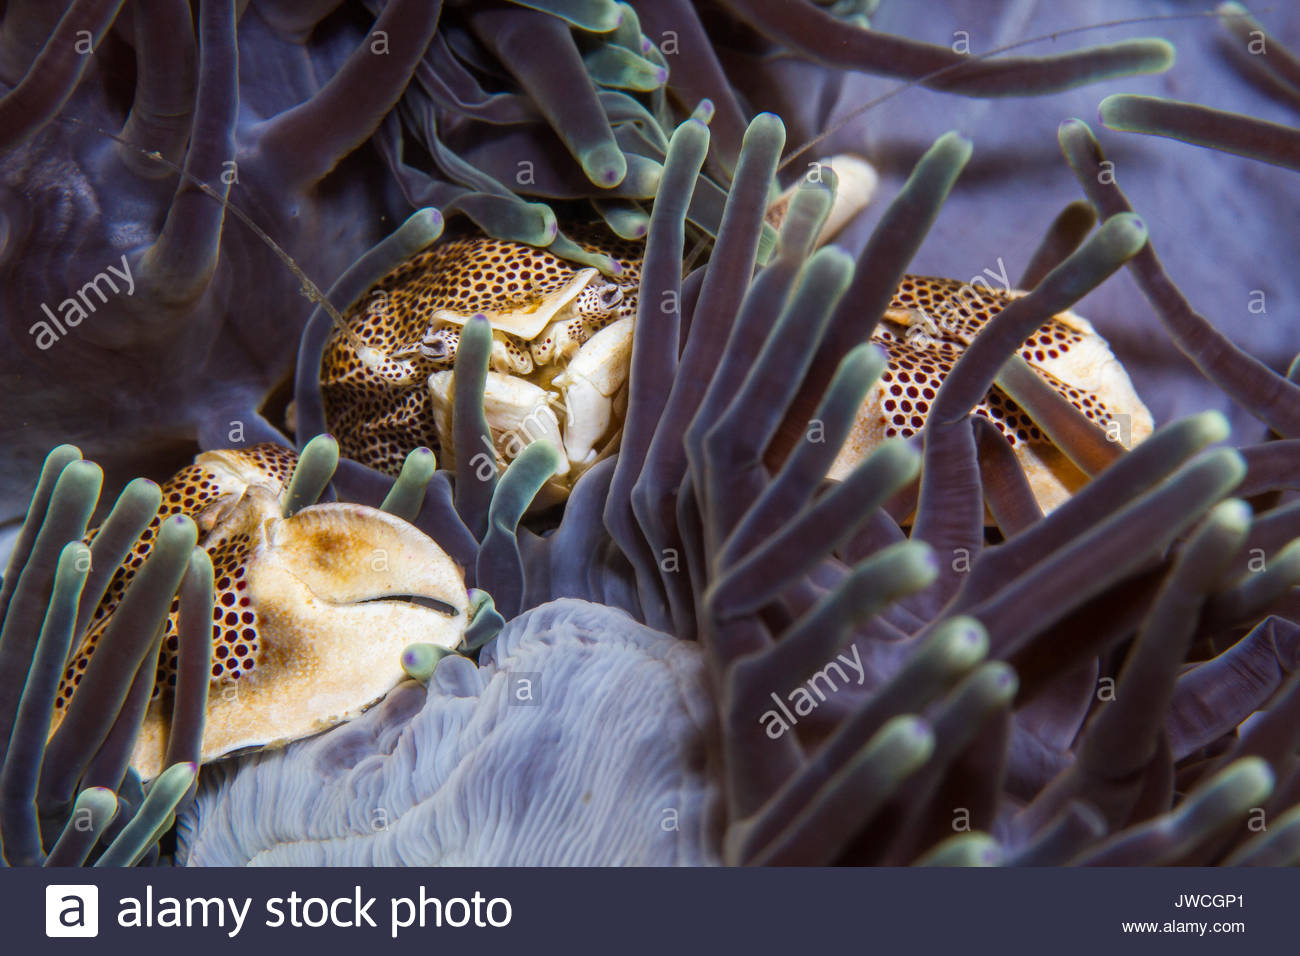 Porcelain crab in anemone. - Stock Image